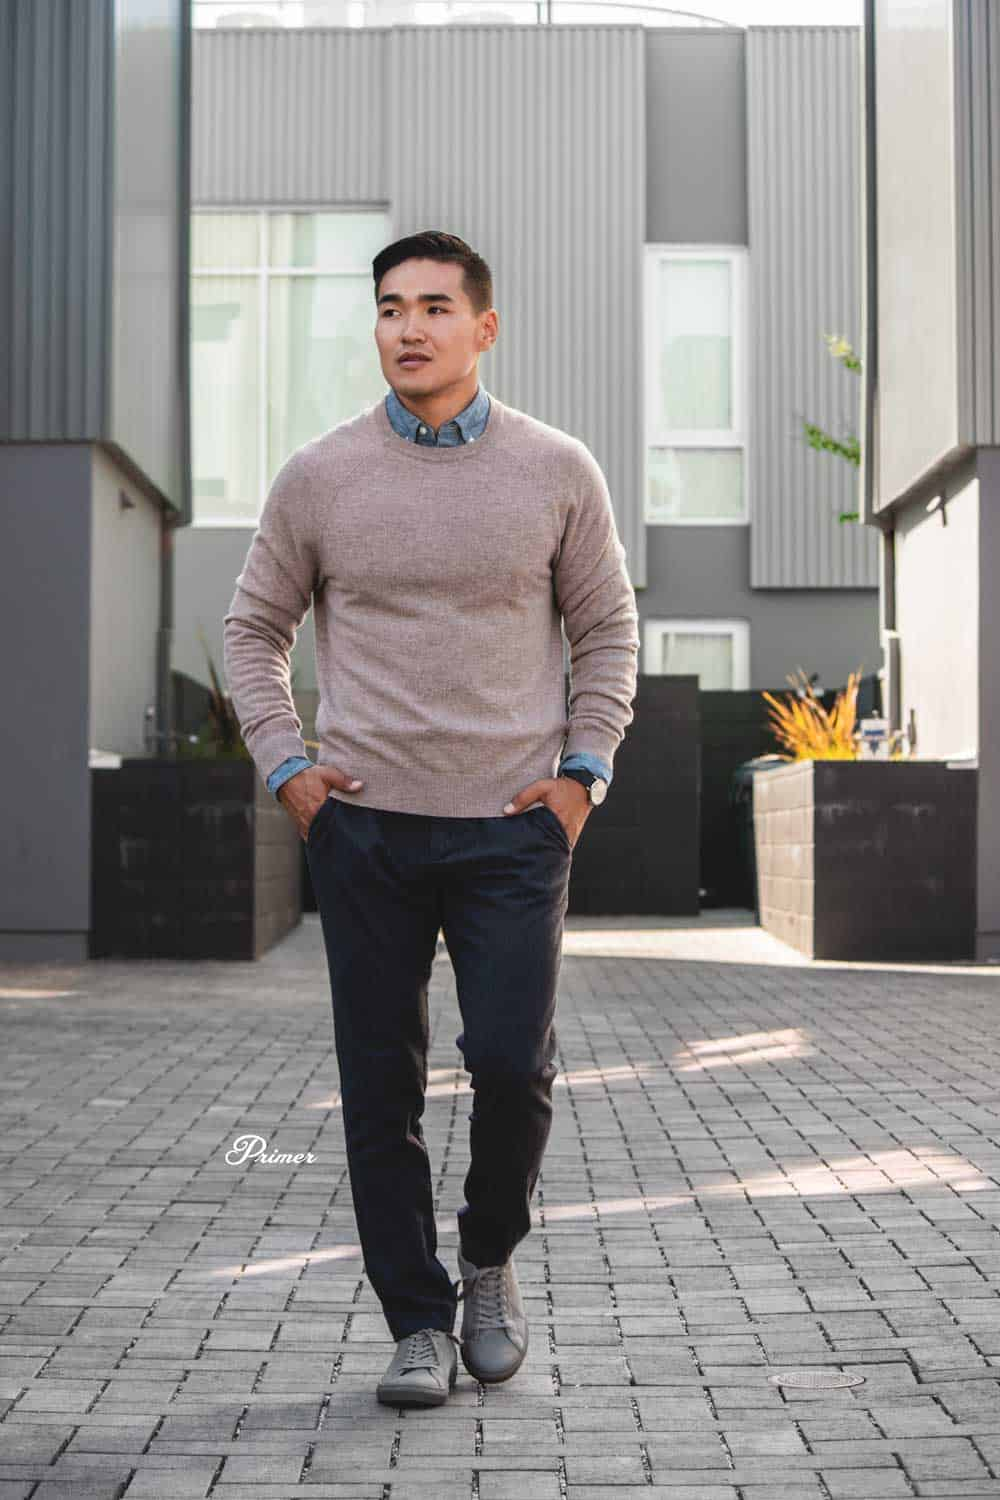 men's fall fashion   camel sweater chambray shirt target pants target gray monochrome sneakers